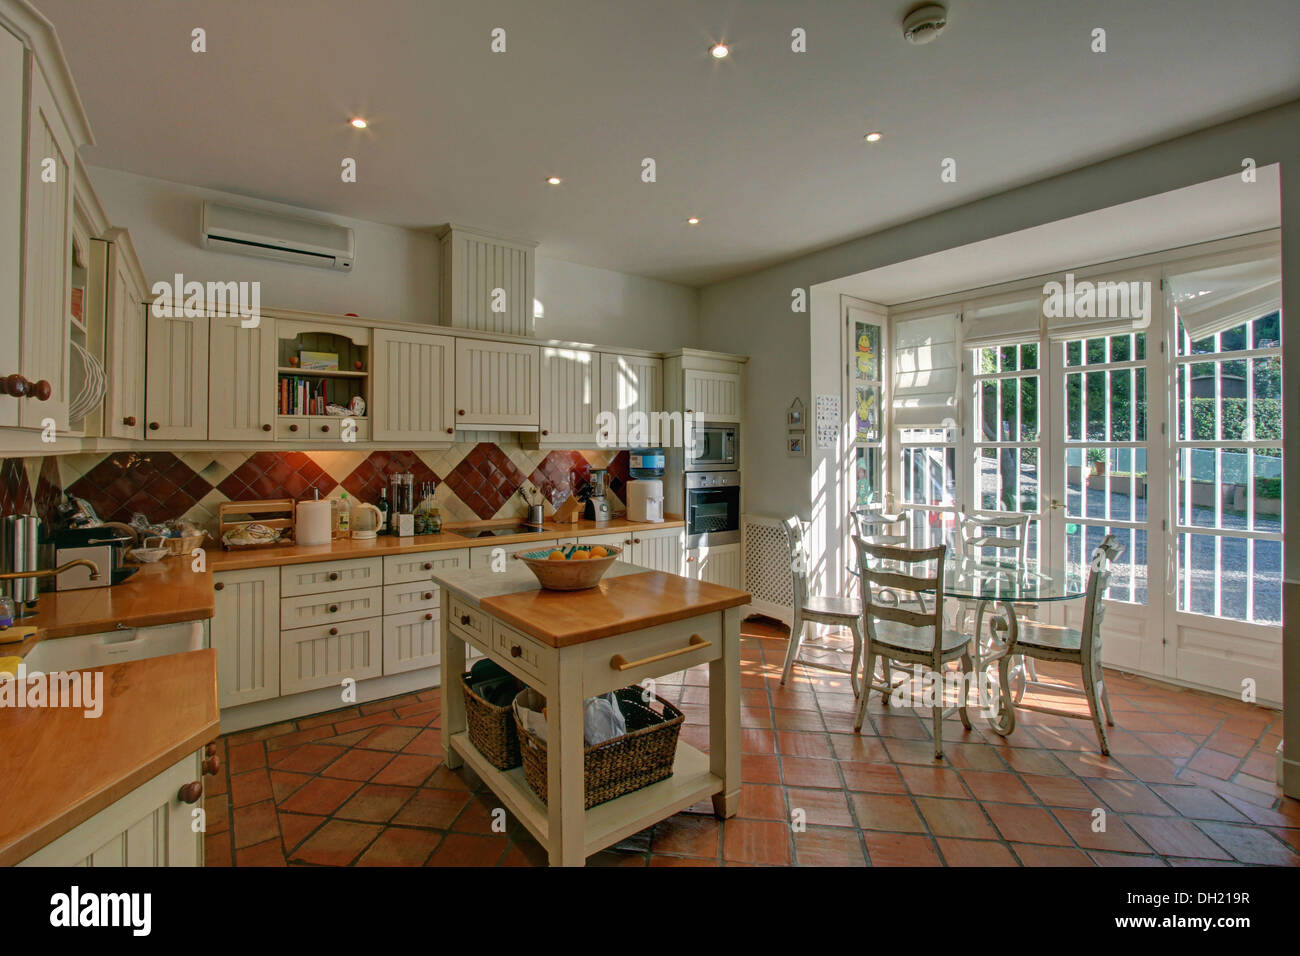 Butchers block in country style Spanish kitchen with terracotta